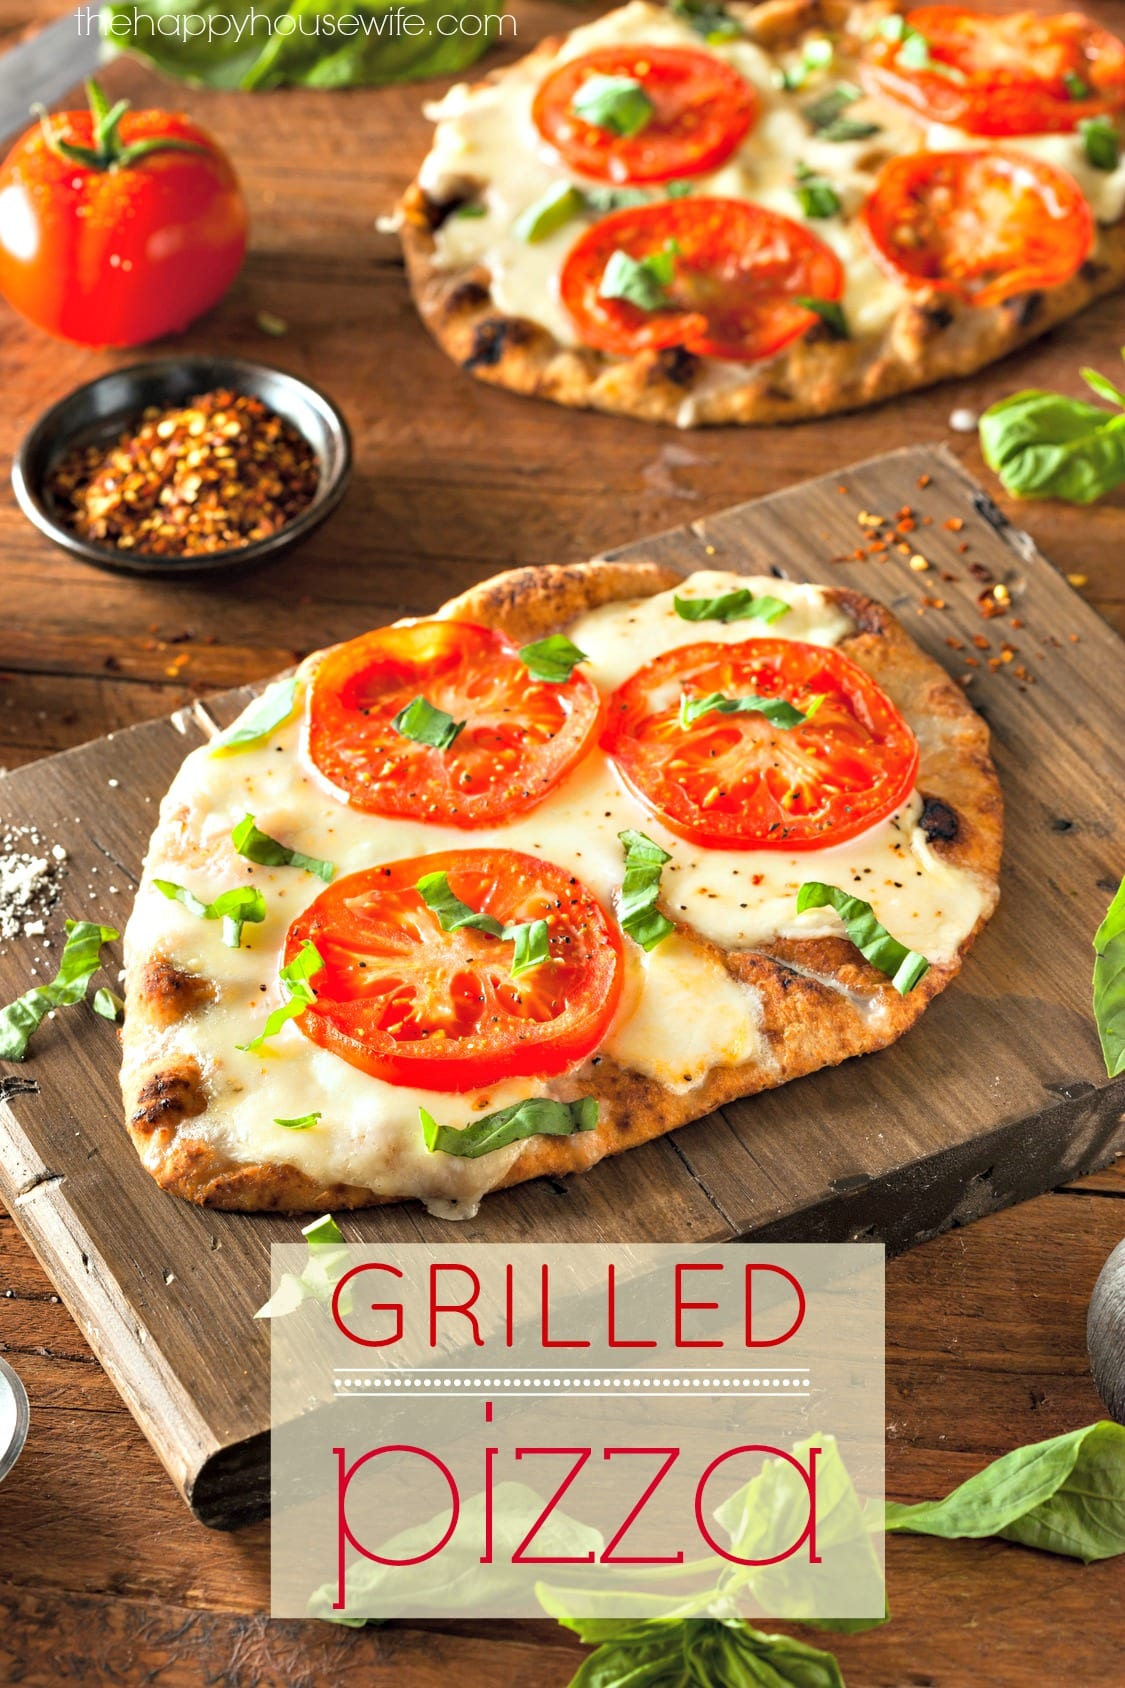 grilled pizza the happy housewife cooking. Black Bedroom Furniture Sets. Home Design Ideas